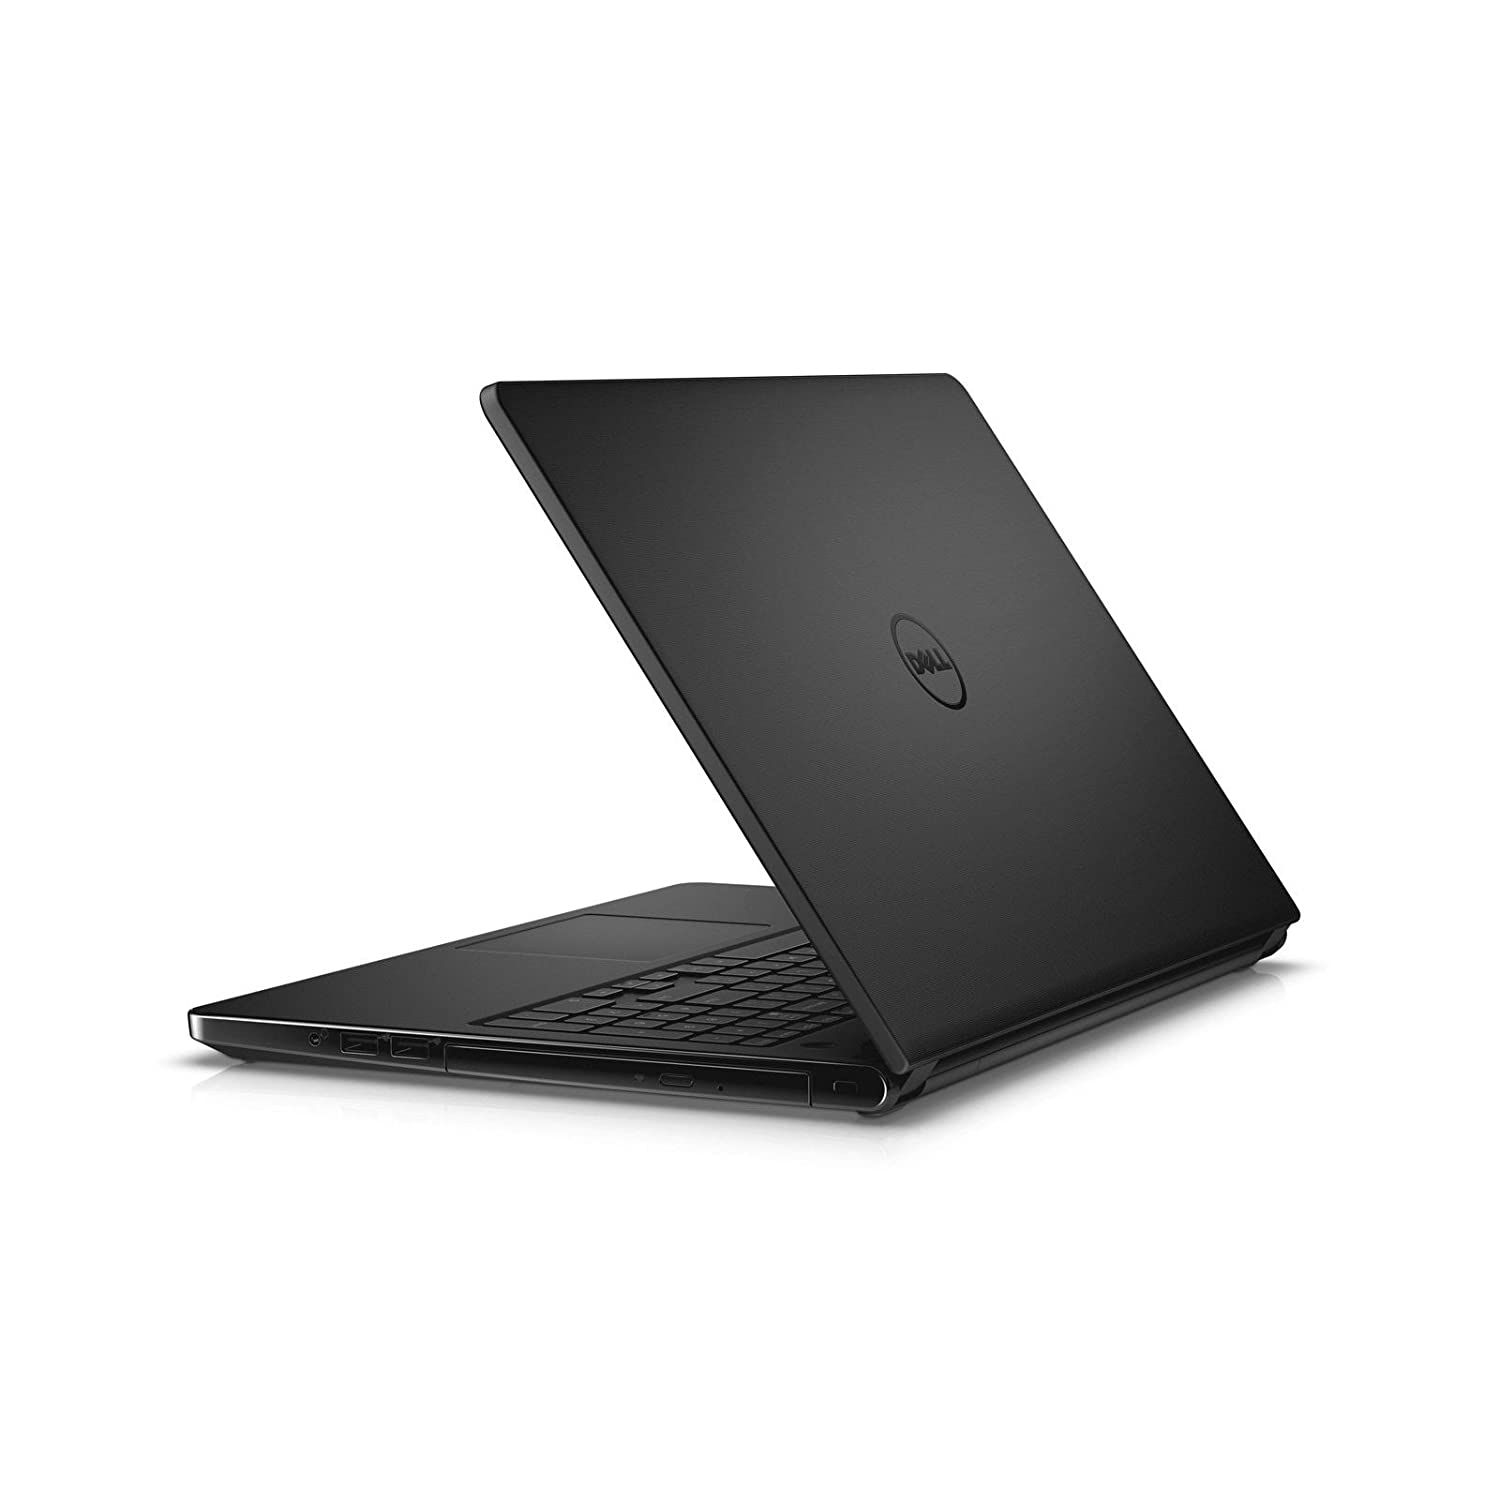 dell inspiron 15 3567 drivers for windows 7 64 bit